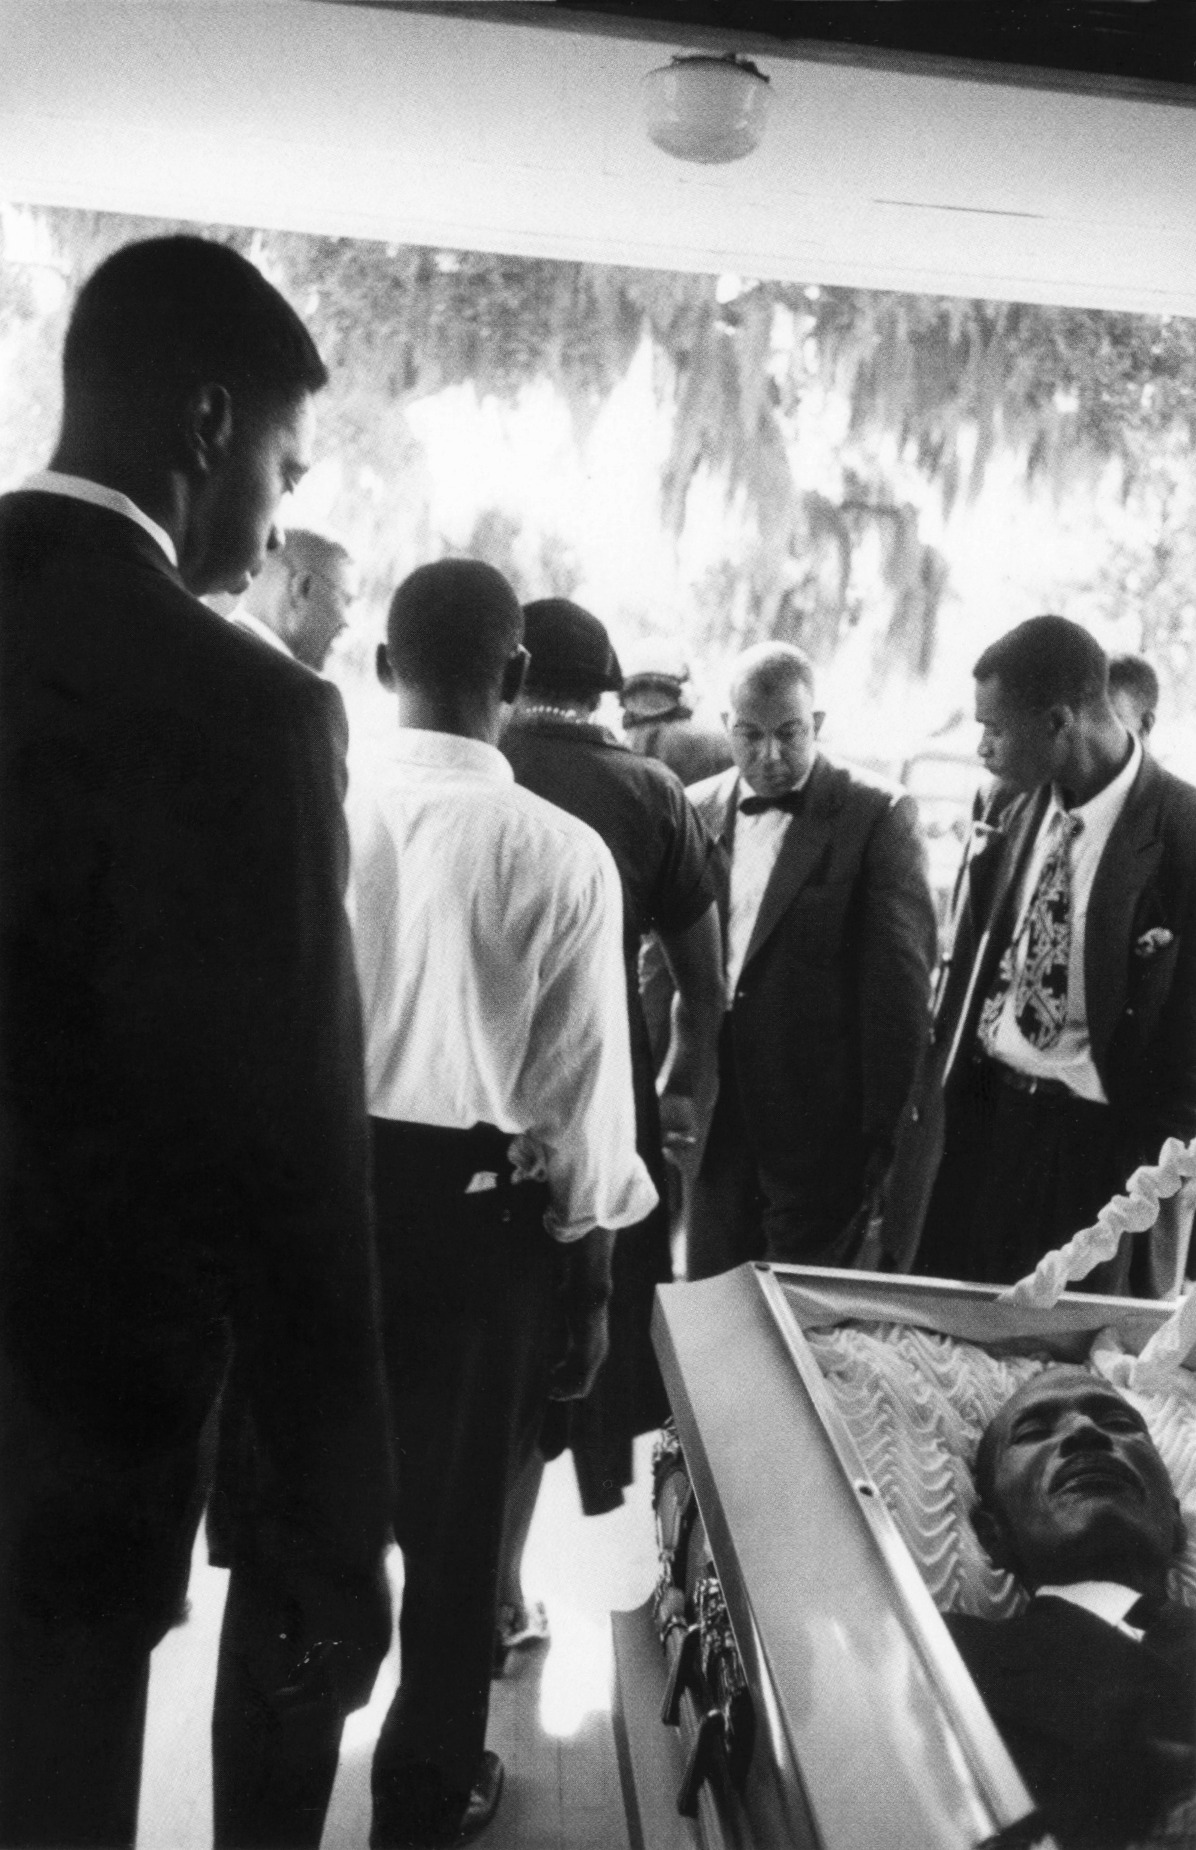 #56 Funeral-St. Helena, SC, 1955